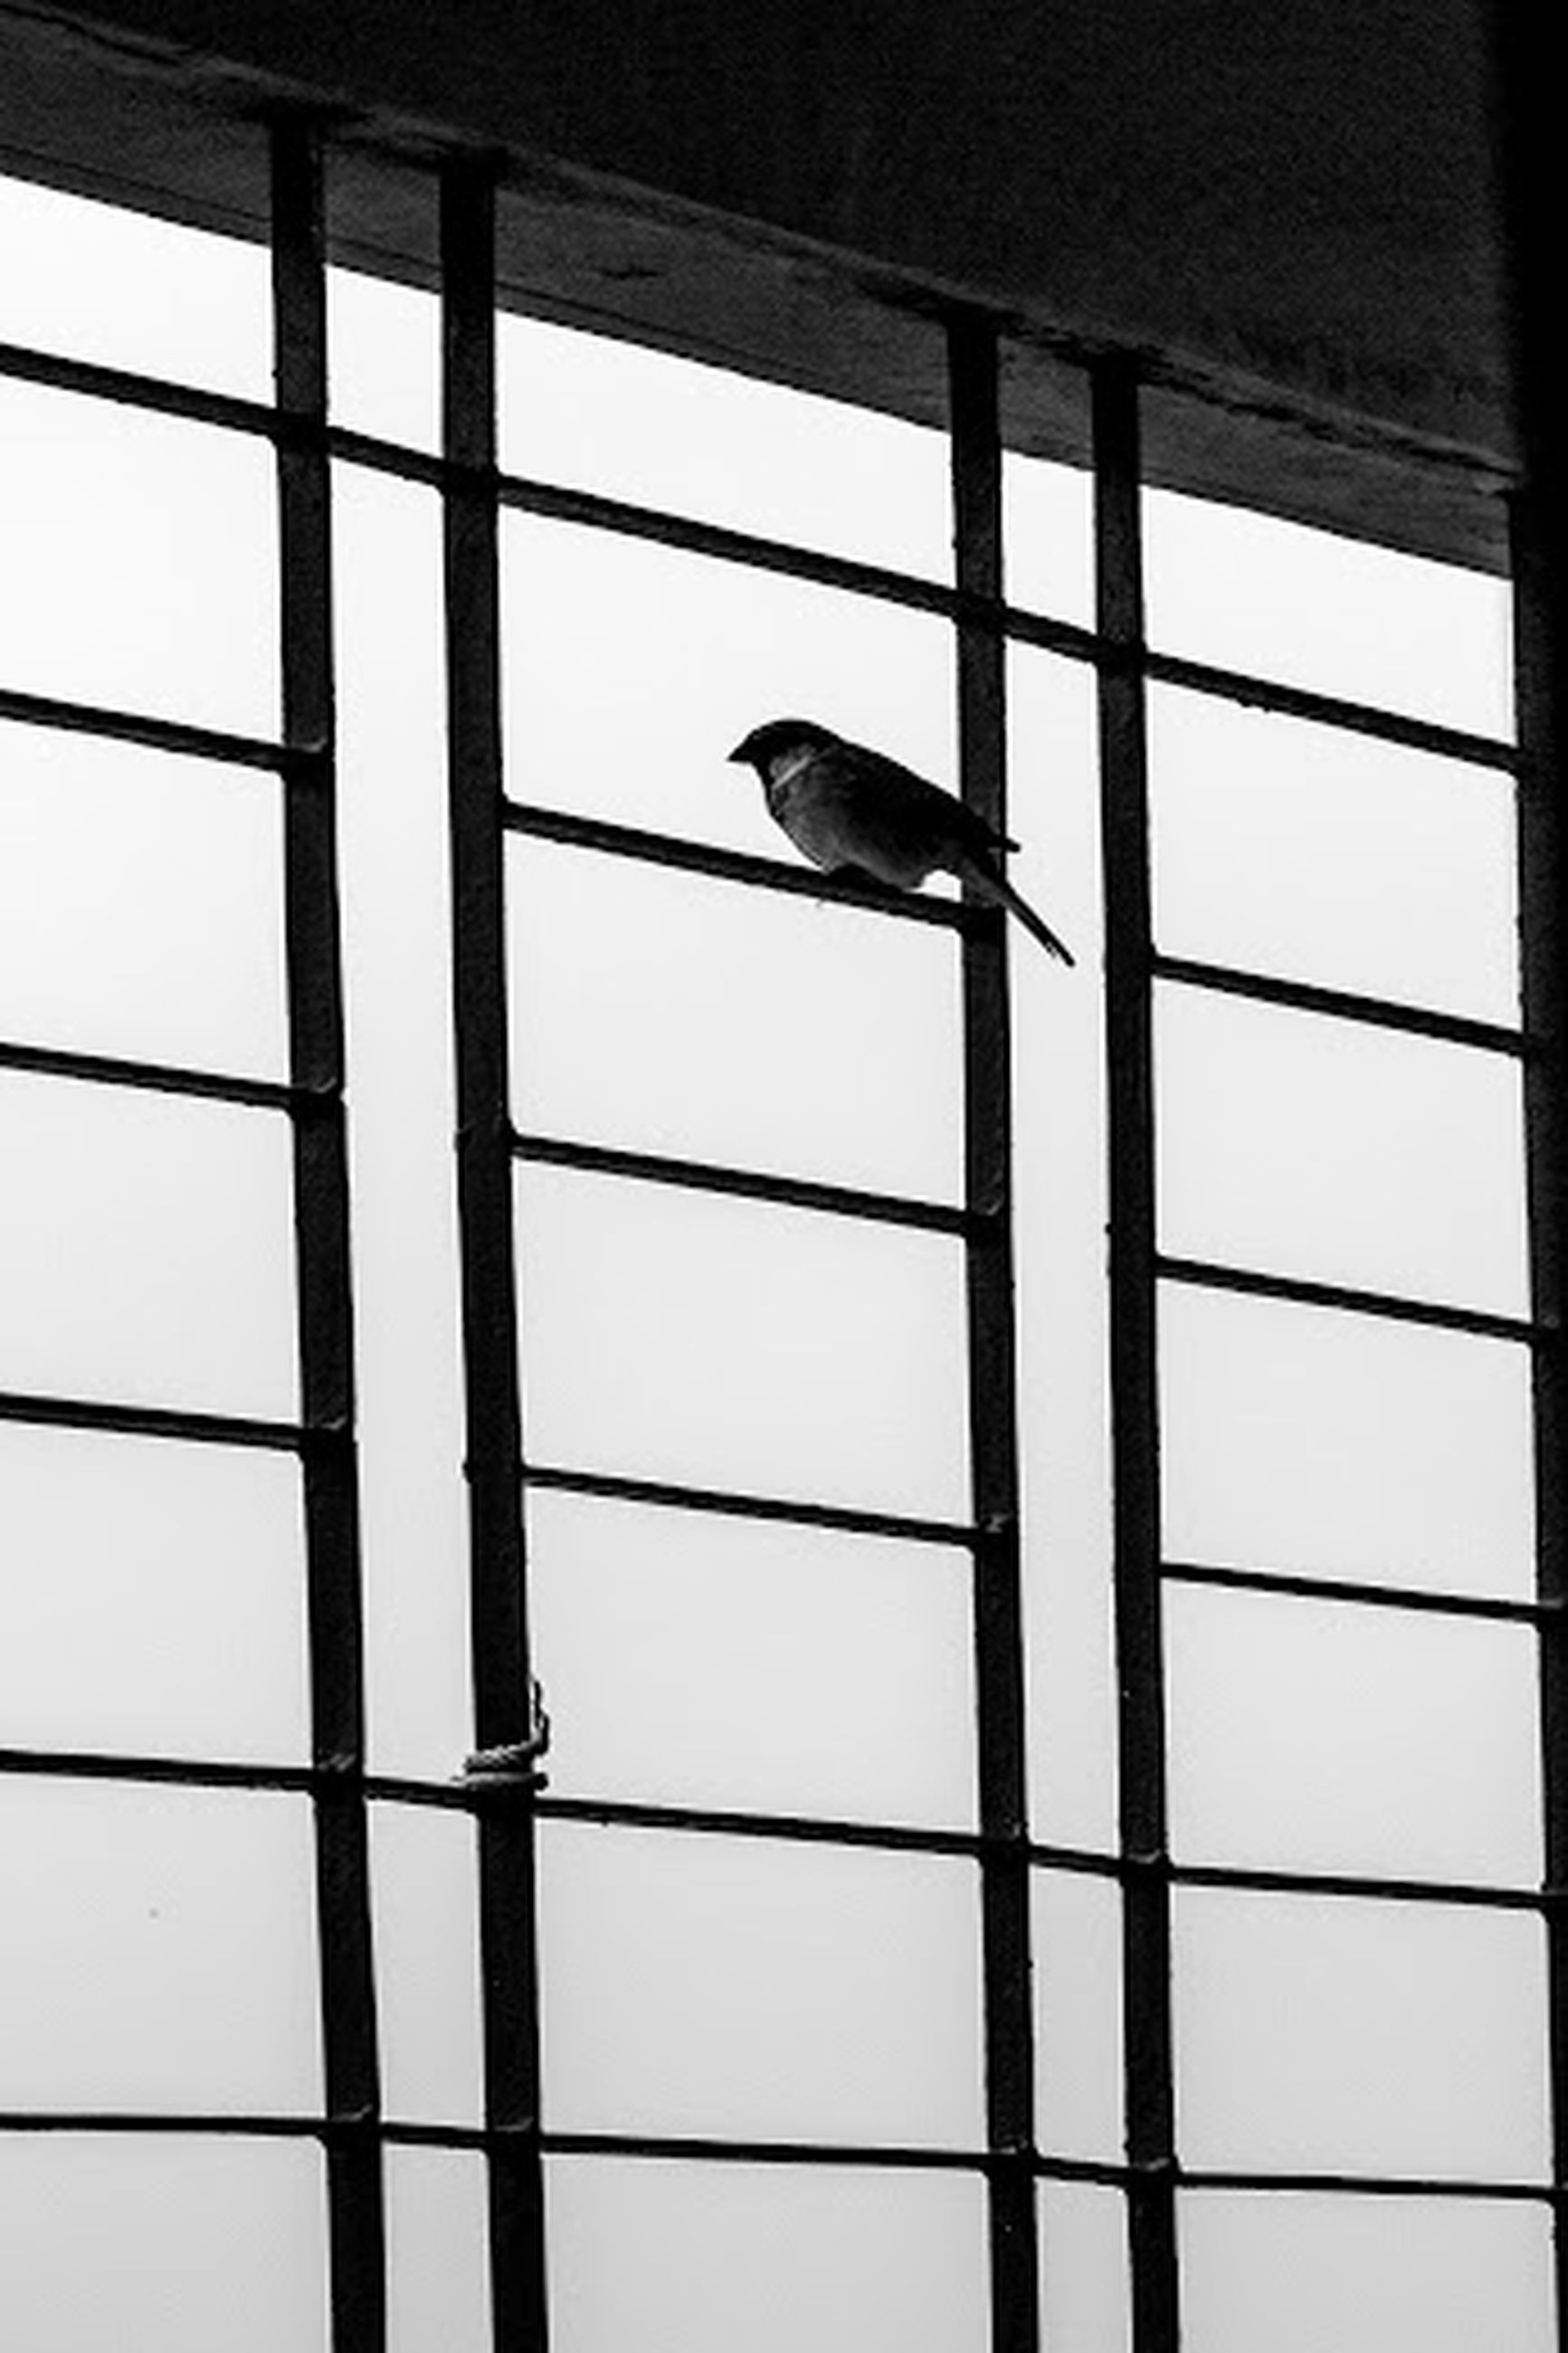 bird, indoors, animal themes, wildlife, animals in the wild, one animal, low angle view, silhouette, window, day, pole, no people, perching, glass - material, transparent, close-up, side view, full length, built structure